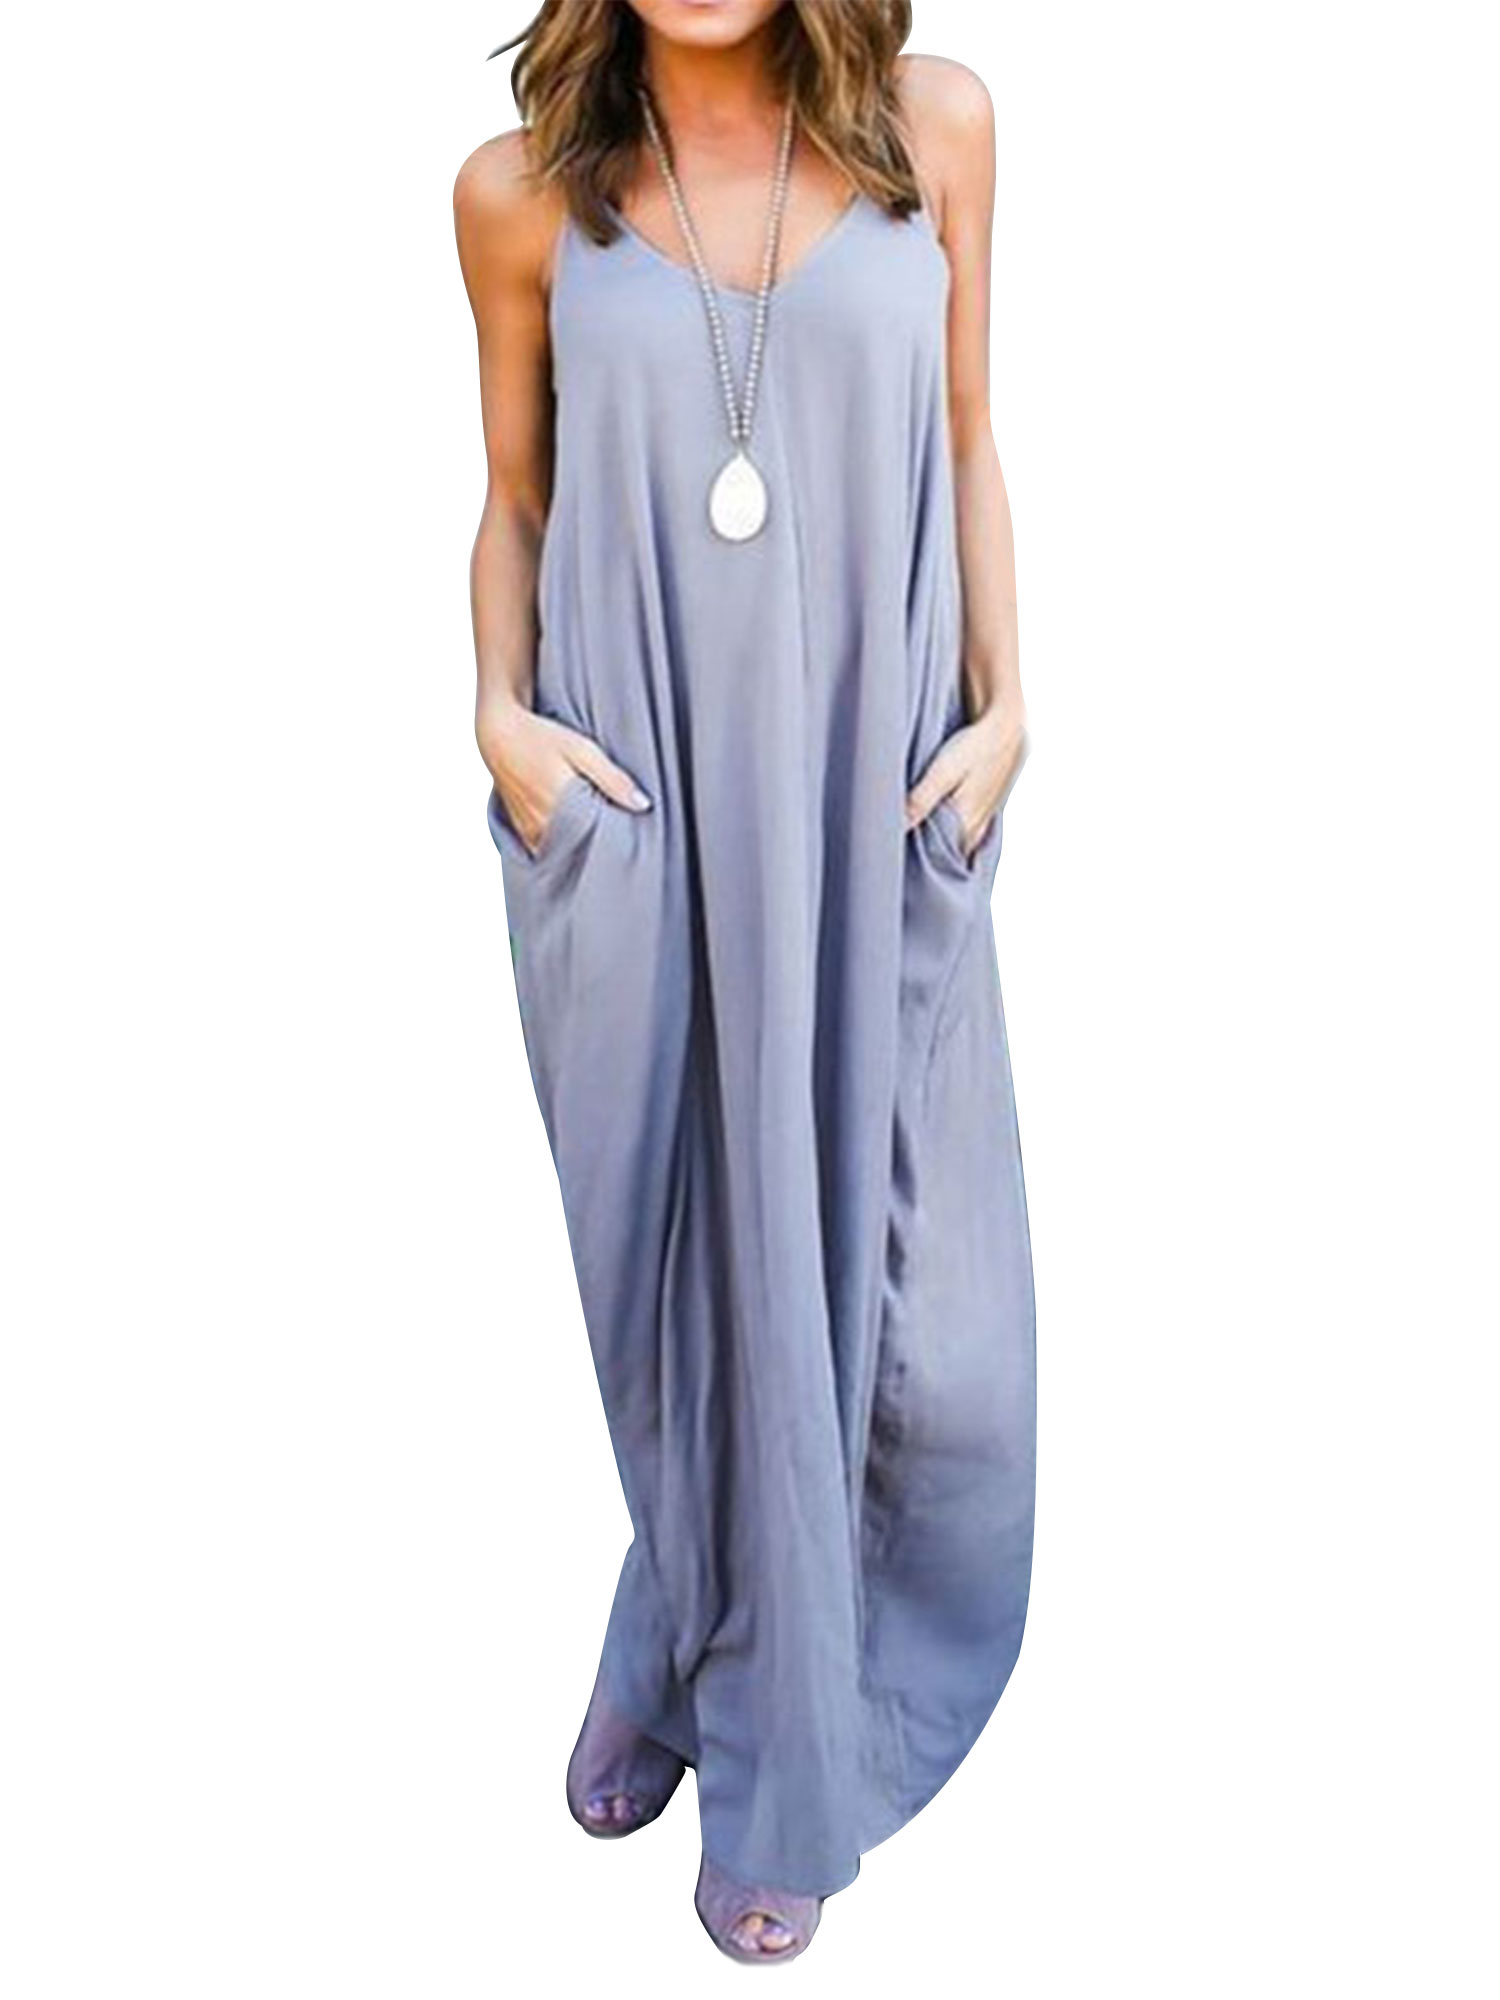 Dresses for Women Casual Summer Strappy V Neck Pocket Loose Maxi Long Beach